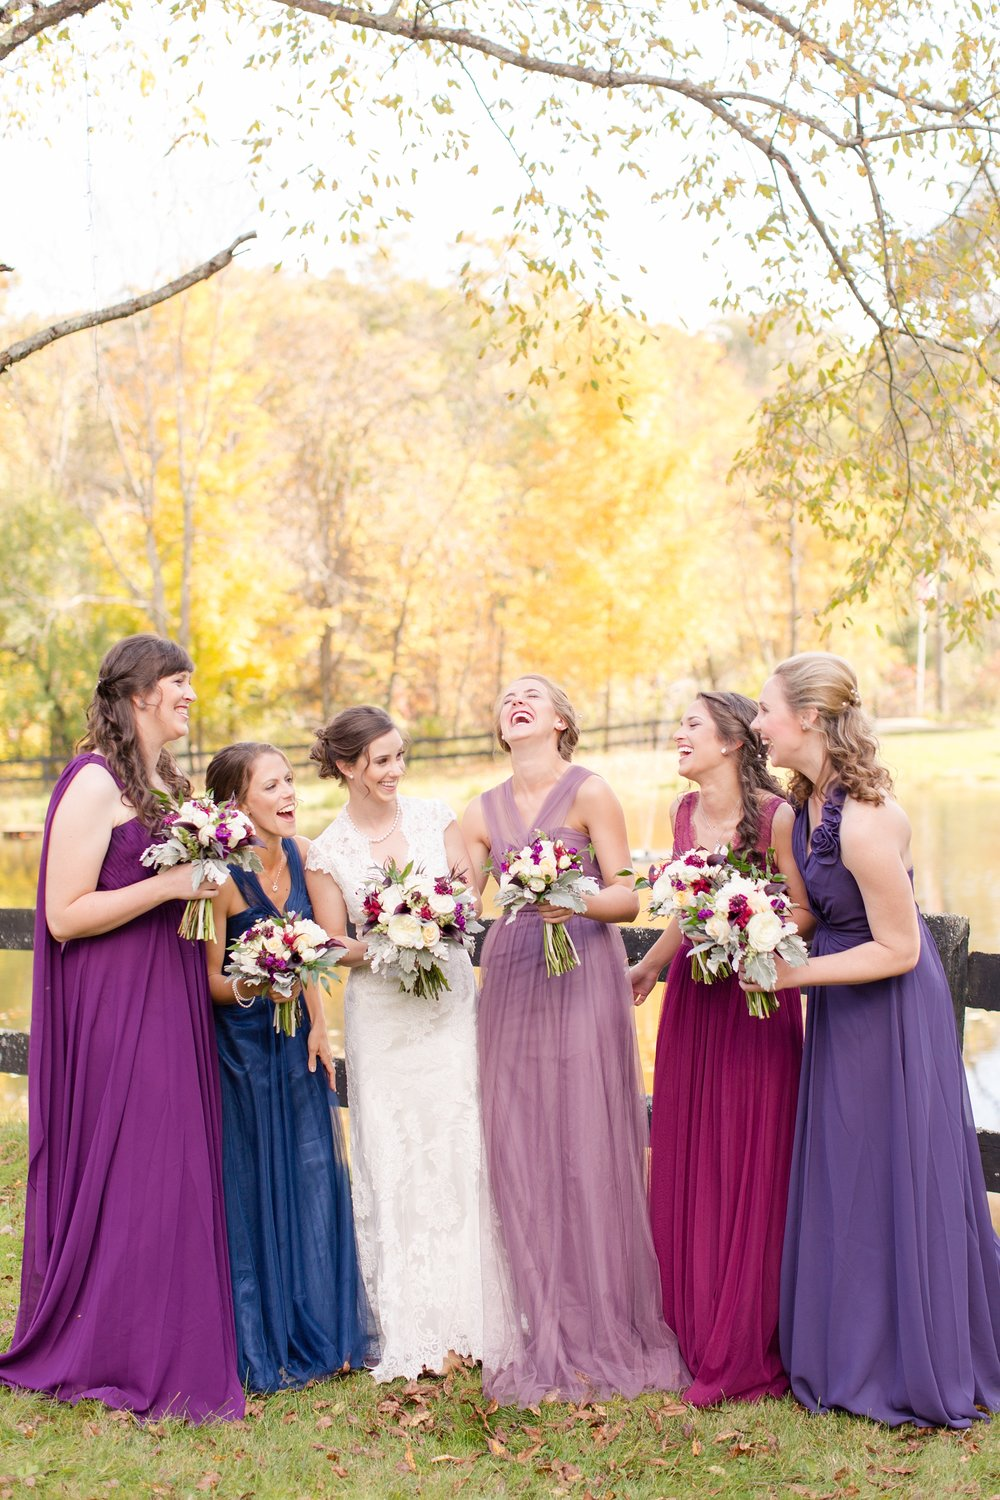 Bird 4. Bridal Party-415_anna grace photography baltimore maryland wedding photographer chanteclaire wedding photo.jpg